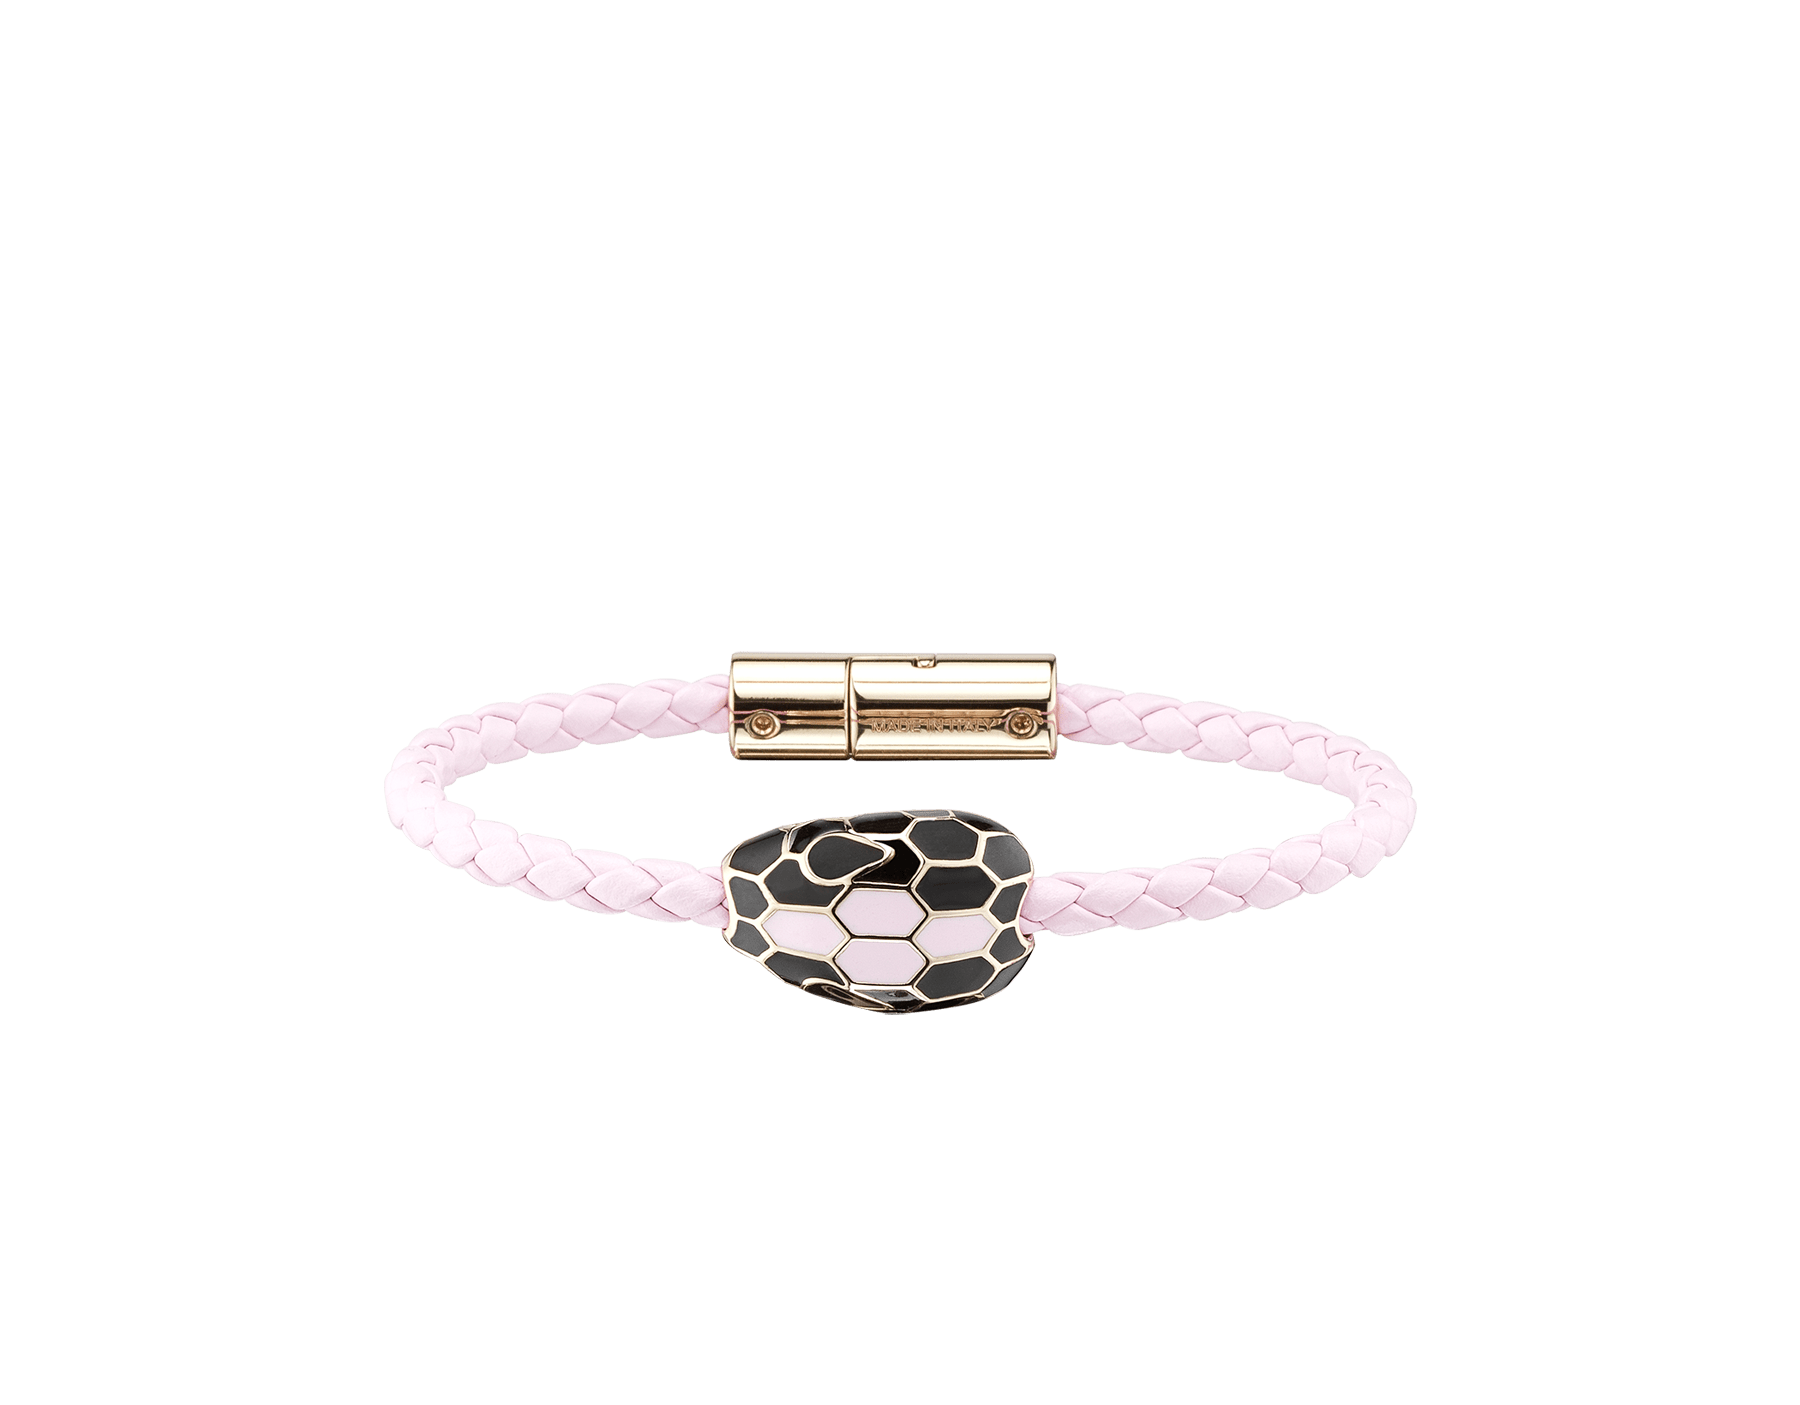 Serpenti Forever braid bracelet in rosa di francia woven calf leather with the iconic snakehead décor in black and rosa di francia enamel. 289011 image 1